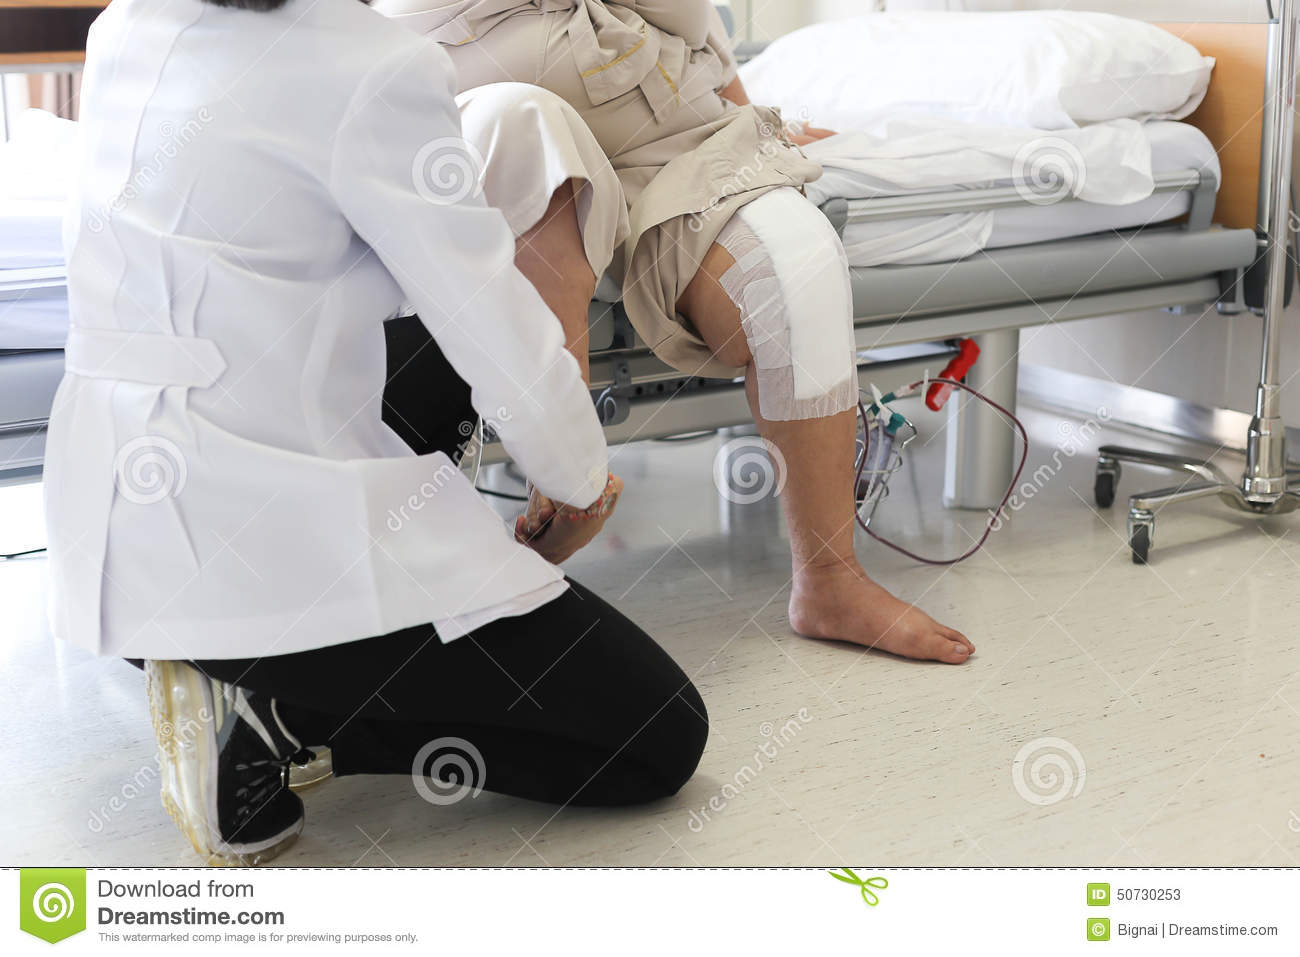 patient with knee pain essay Knee injuries essaysthough many people in the us suffer from common ailments such as carpal tunnel syndrome and arthritis, as many as 6,000,000 people in the country see doctors annually complaining of knee pain, and thousands of others never visit the doctor.